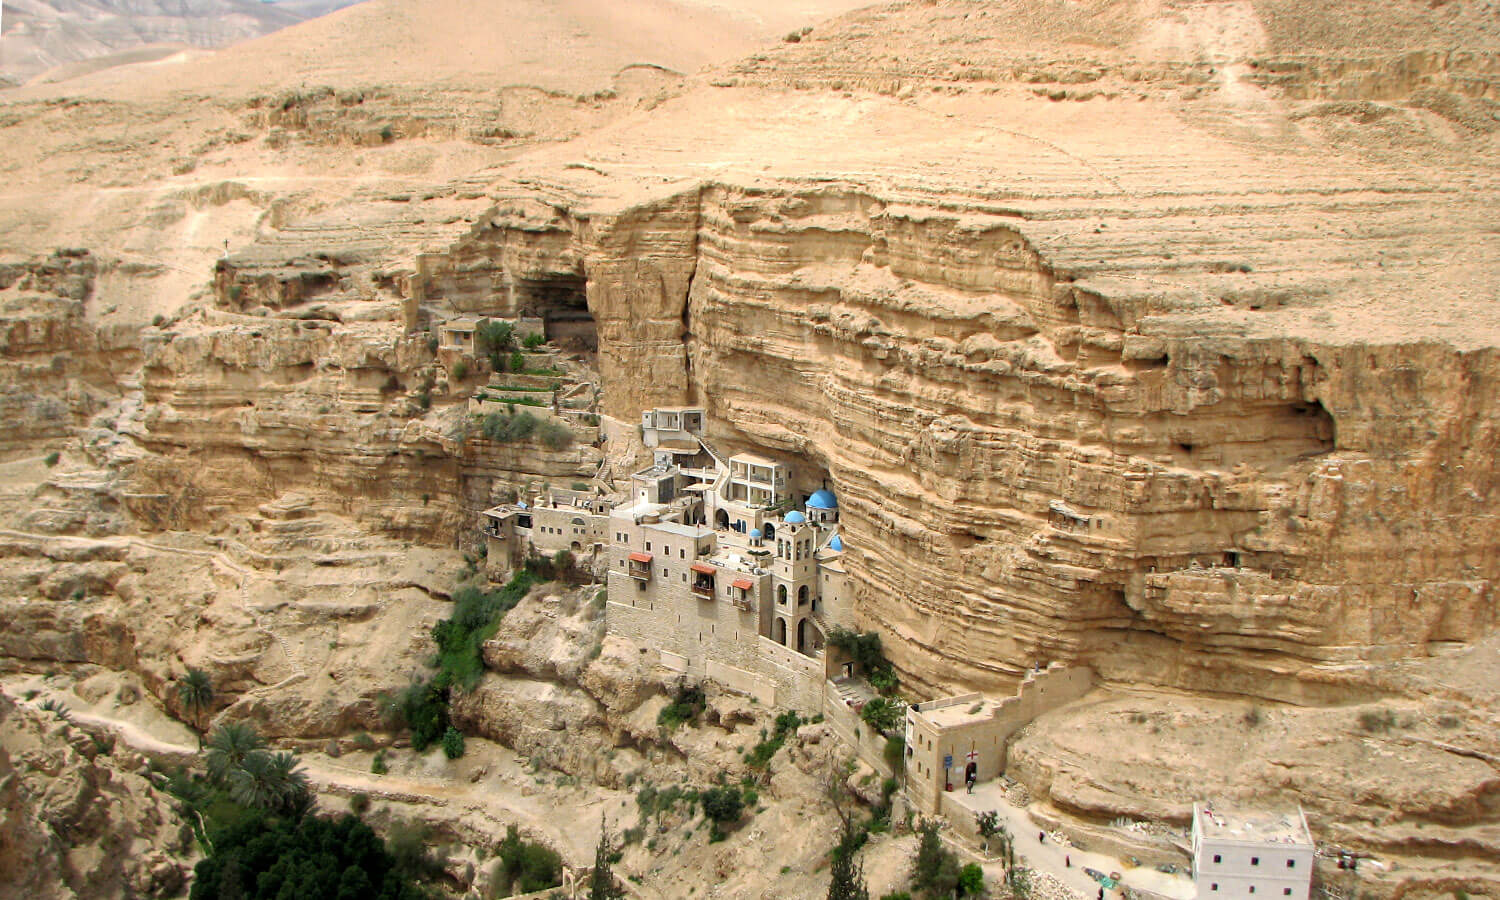 St George's Monastery at Wadi Qelt